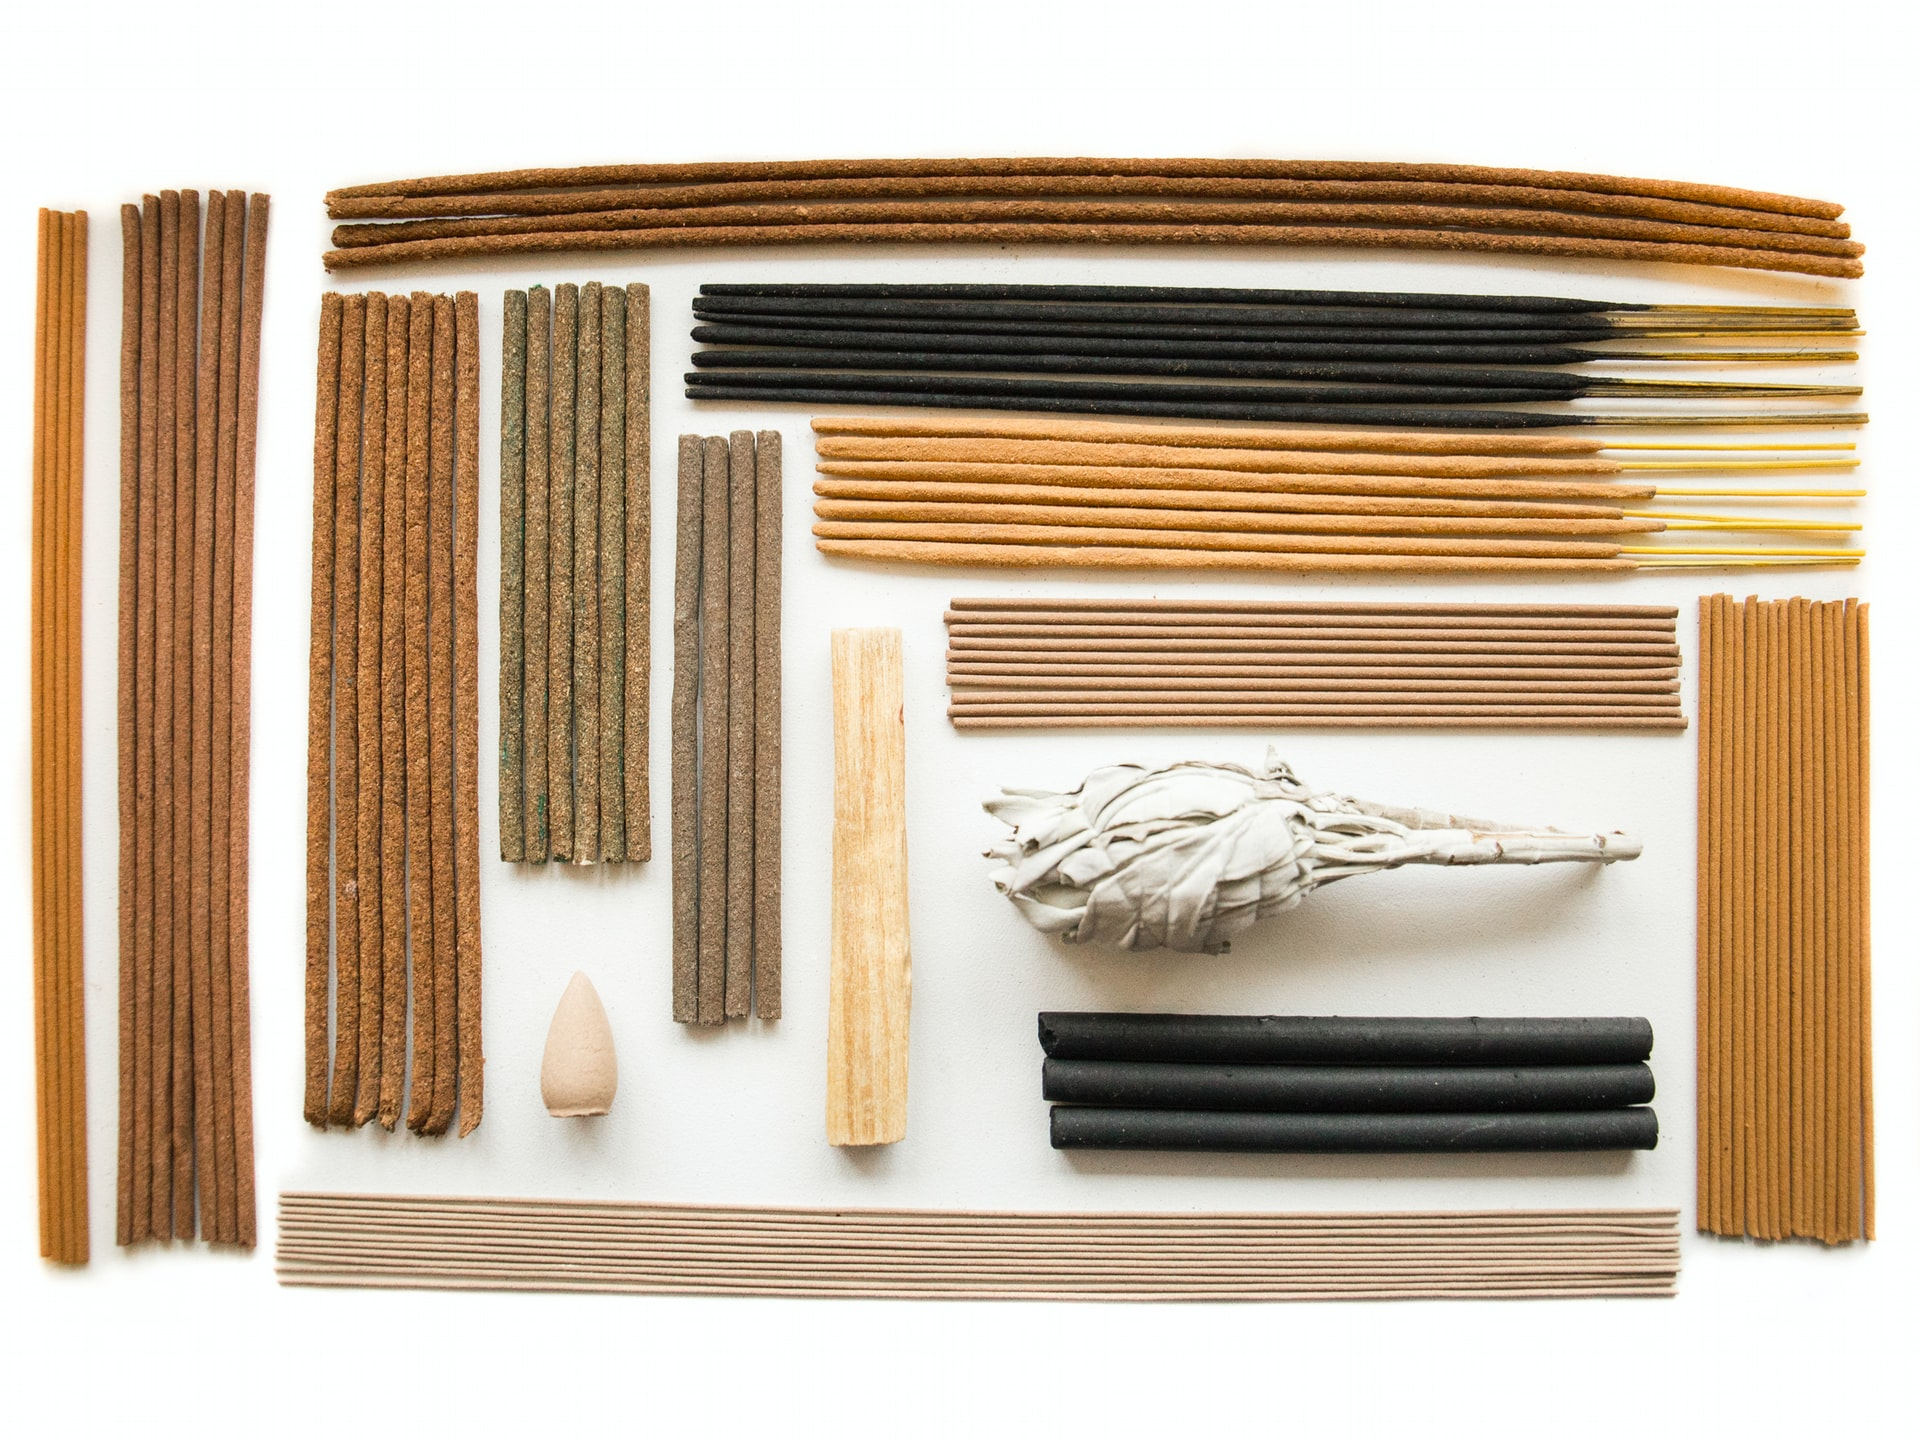 smuding and incense rituals as spring cleaning